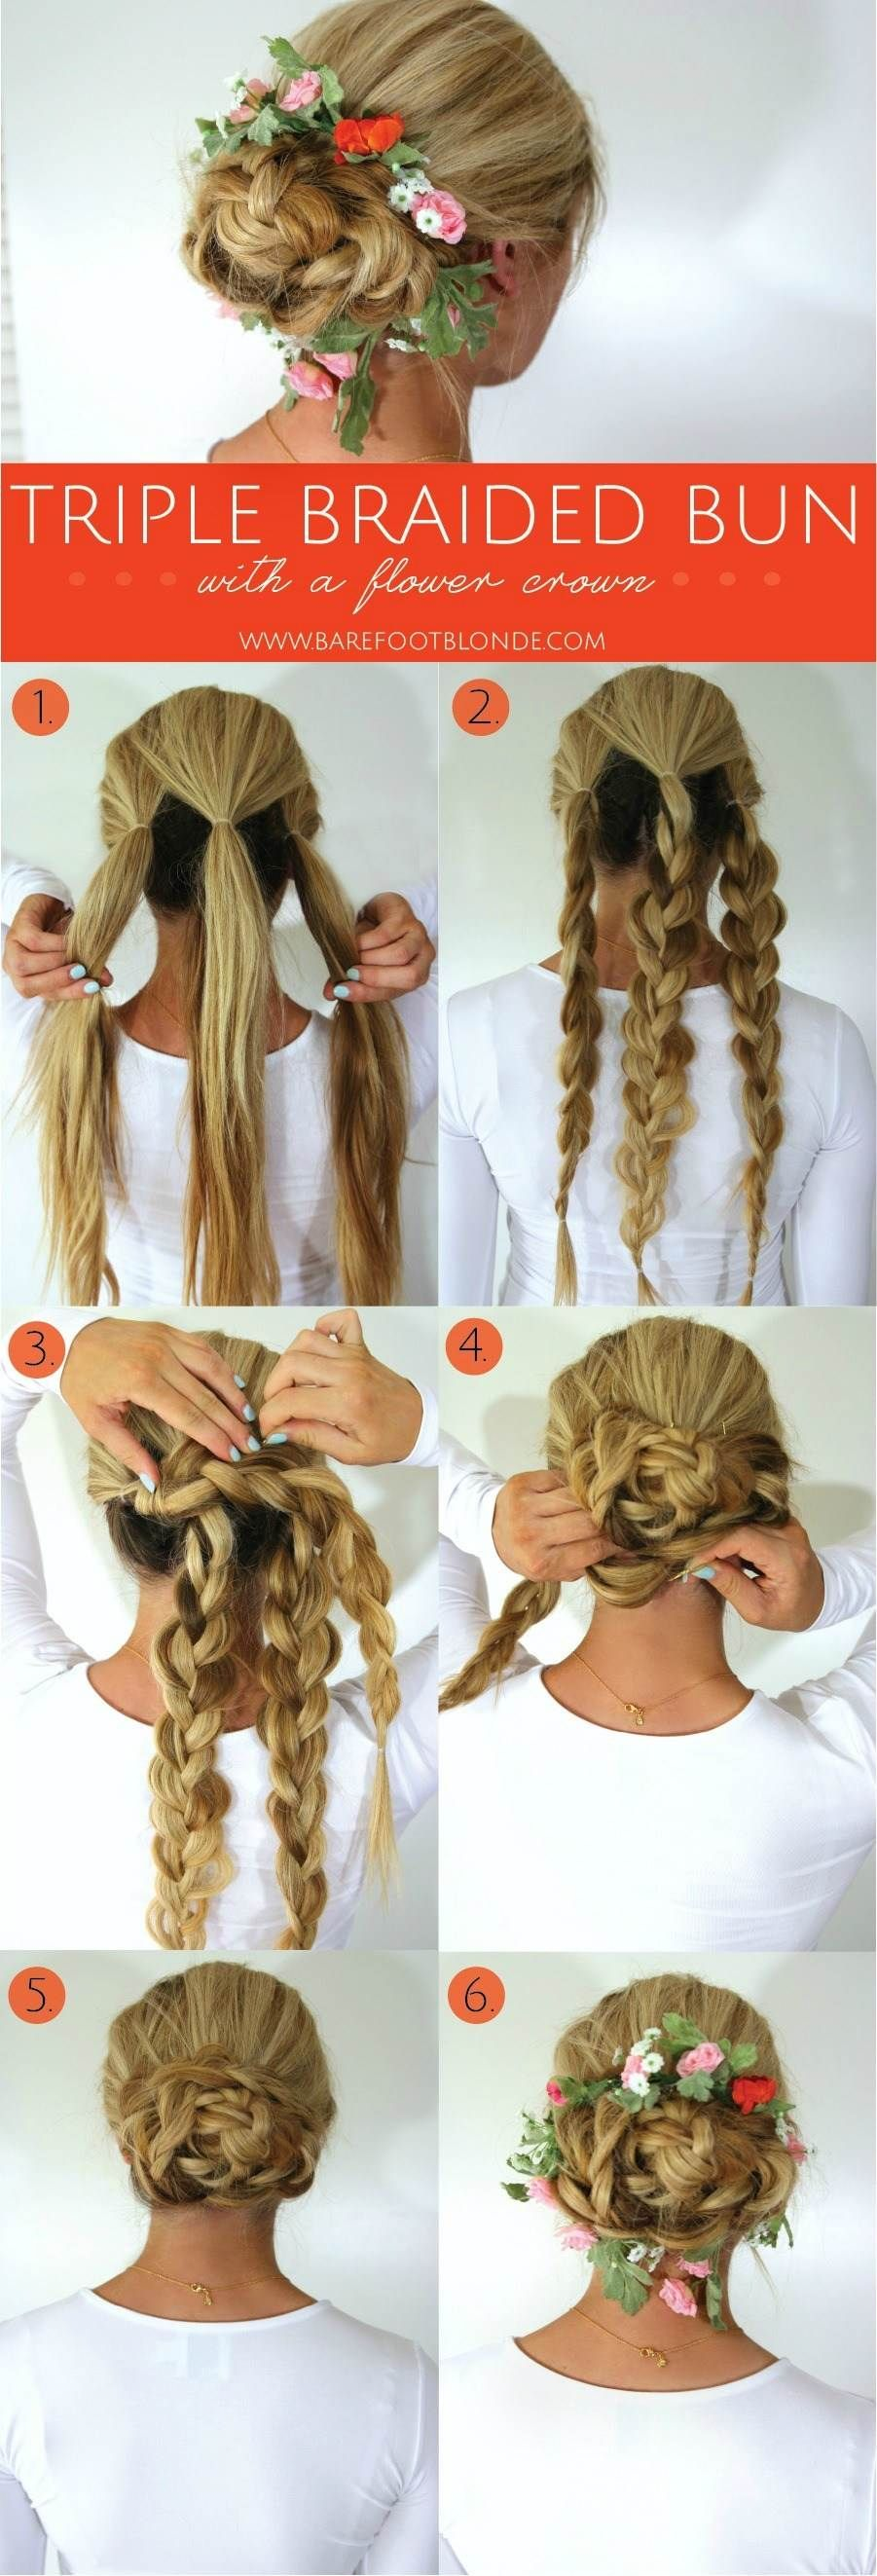 of the best braided hairstyles barefoot blonde creative and unique